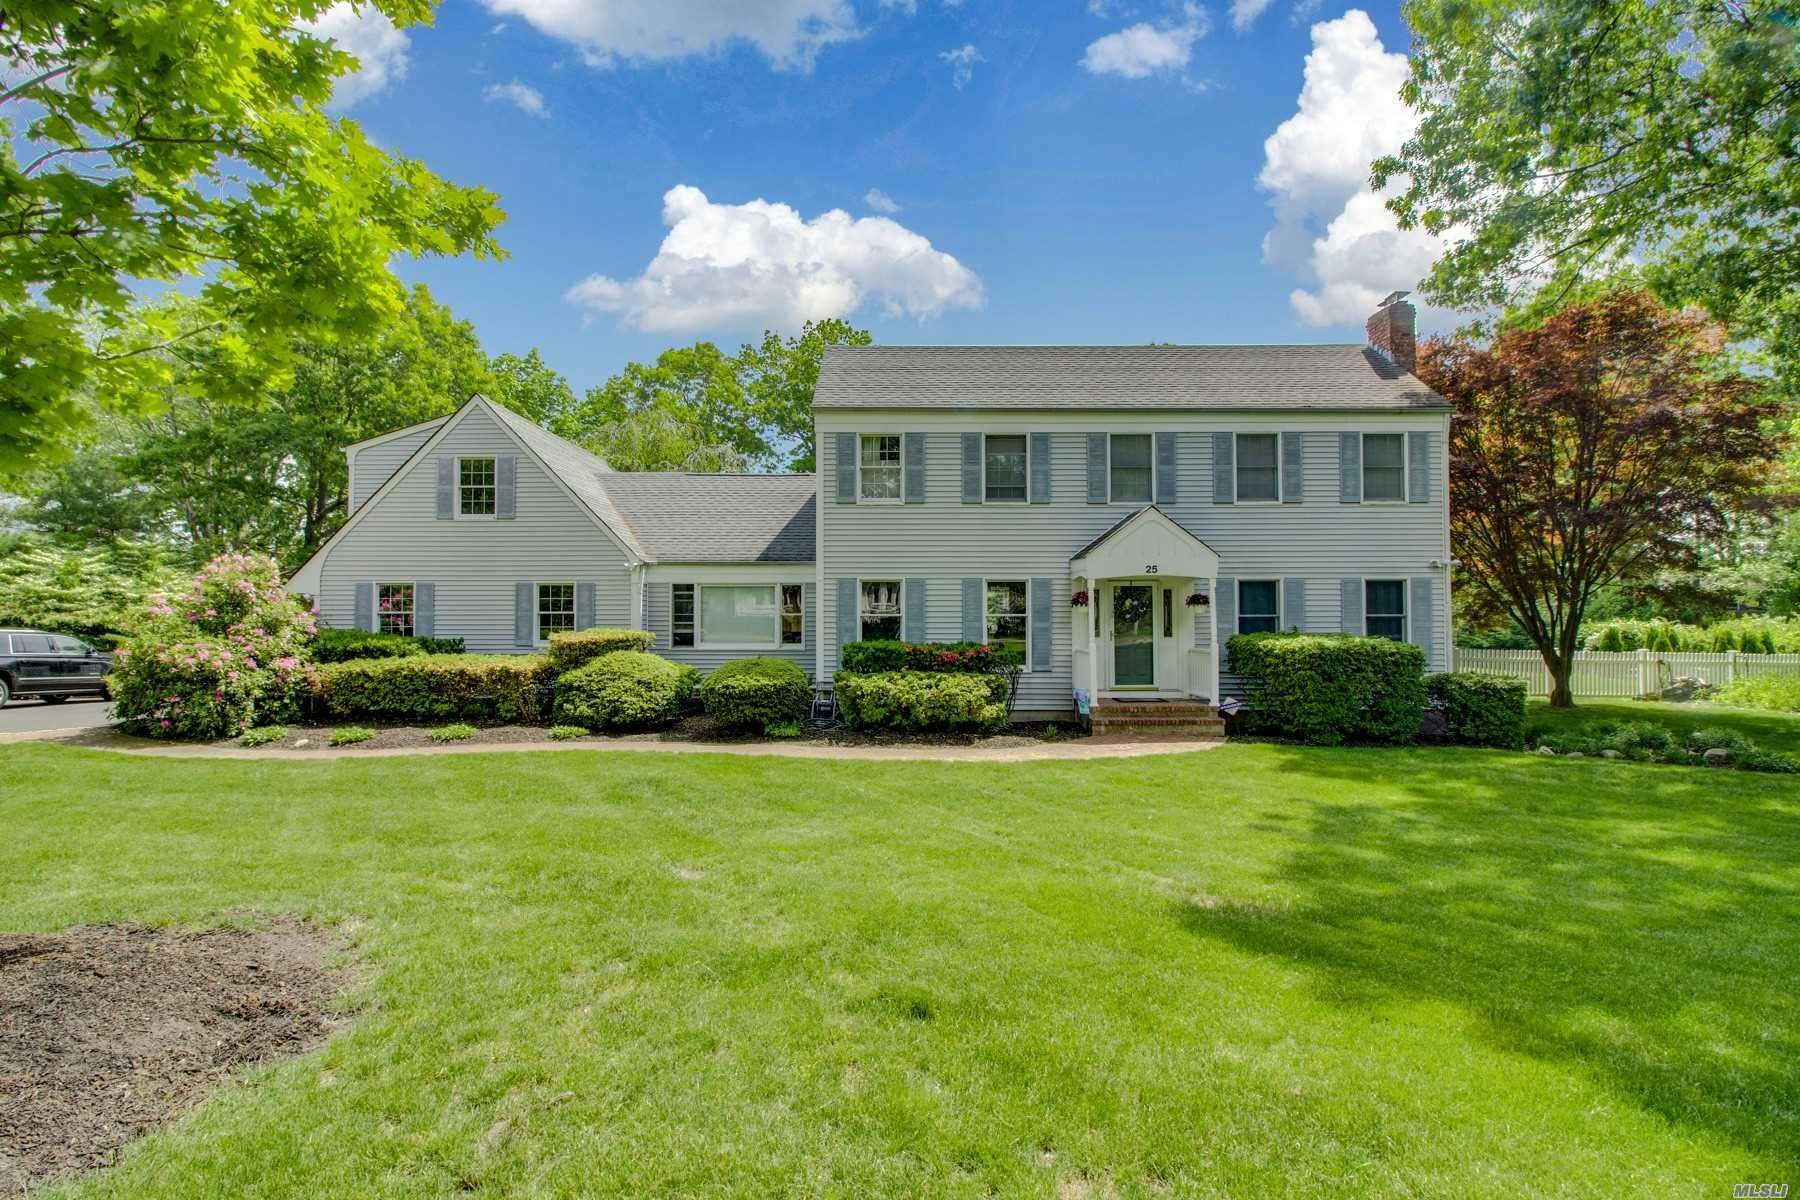 25 Willow Pond Lane, Miller Place, NY 11764 - MLS#: 3219448